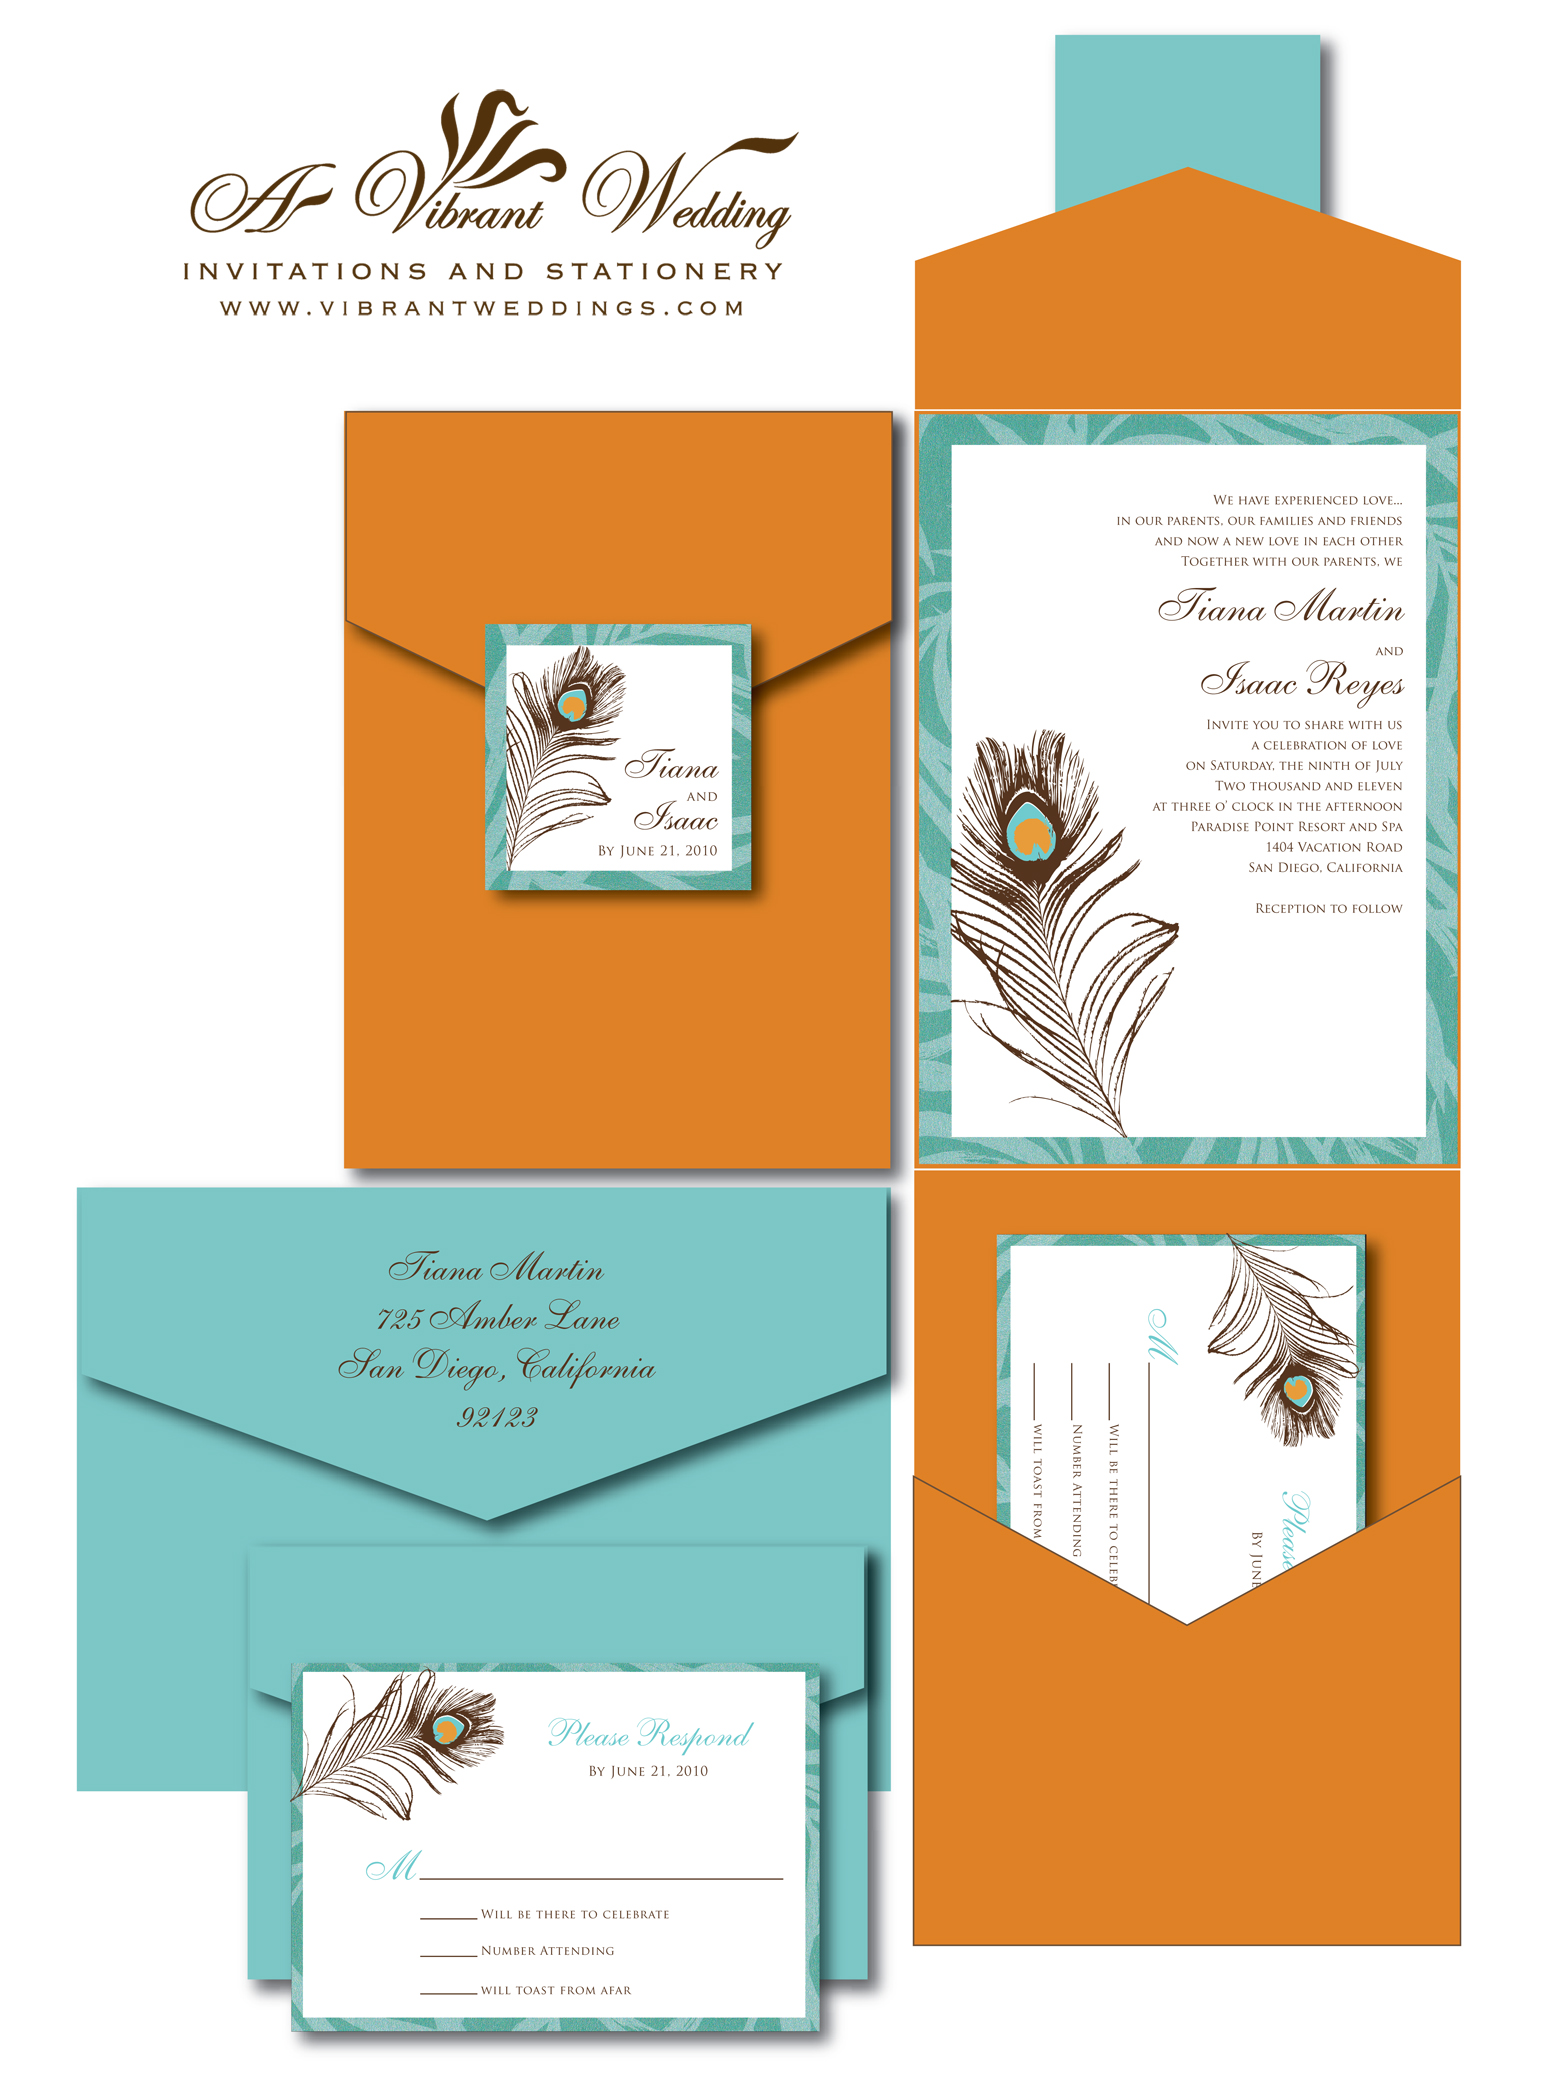 orange wedding invitation tiffany blue wedding invitations Burnt Orange and Turquoise Wedding Invitation with Peacock Feather Design